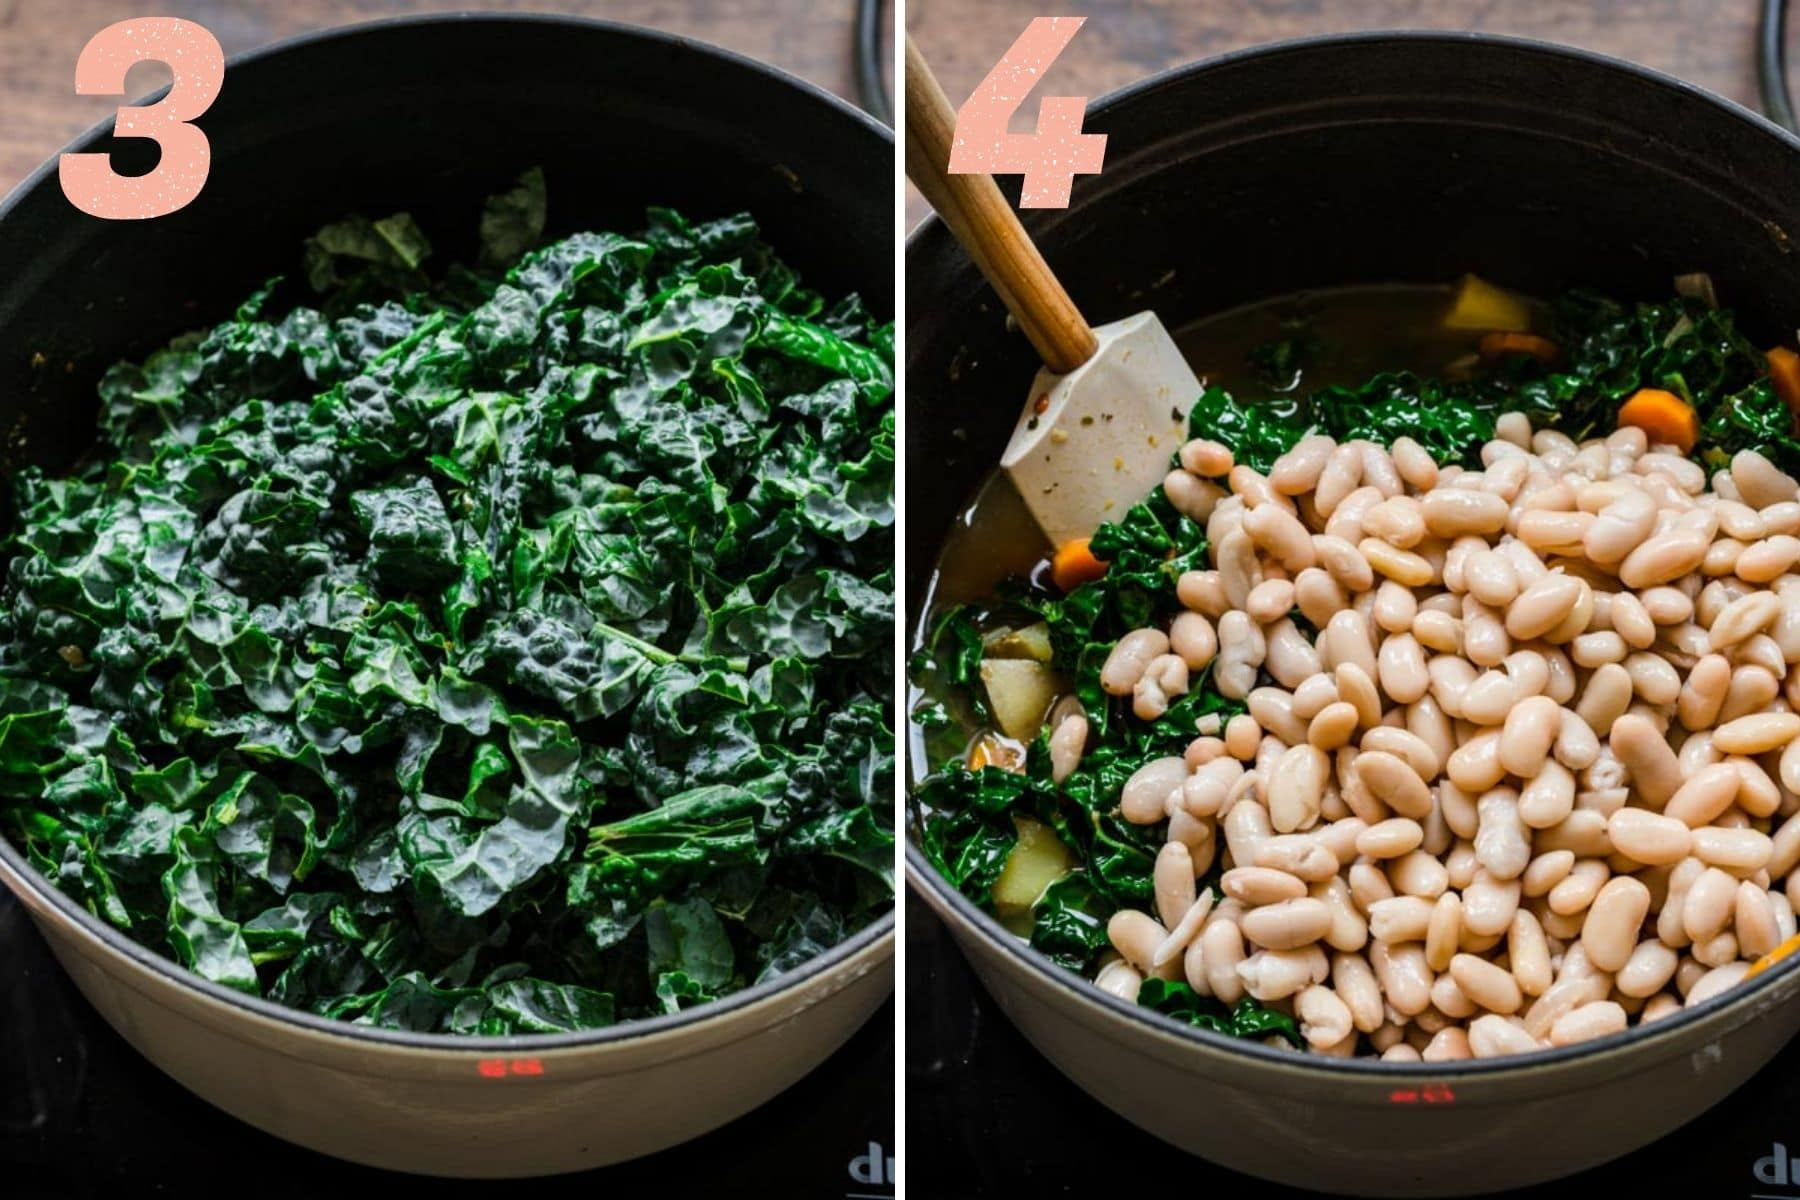 On the left: kale added to pot. On the right: cannellini beans added to pot.